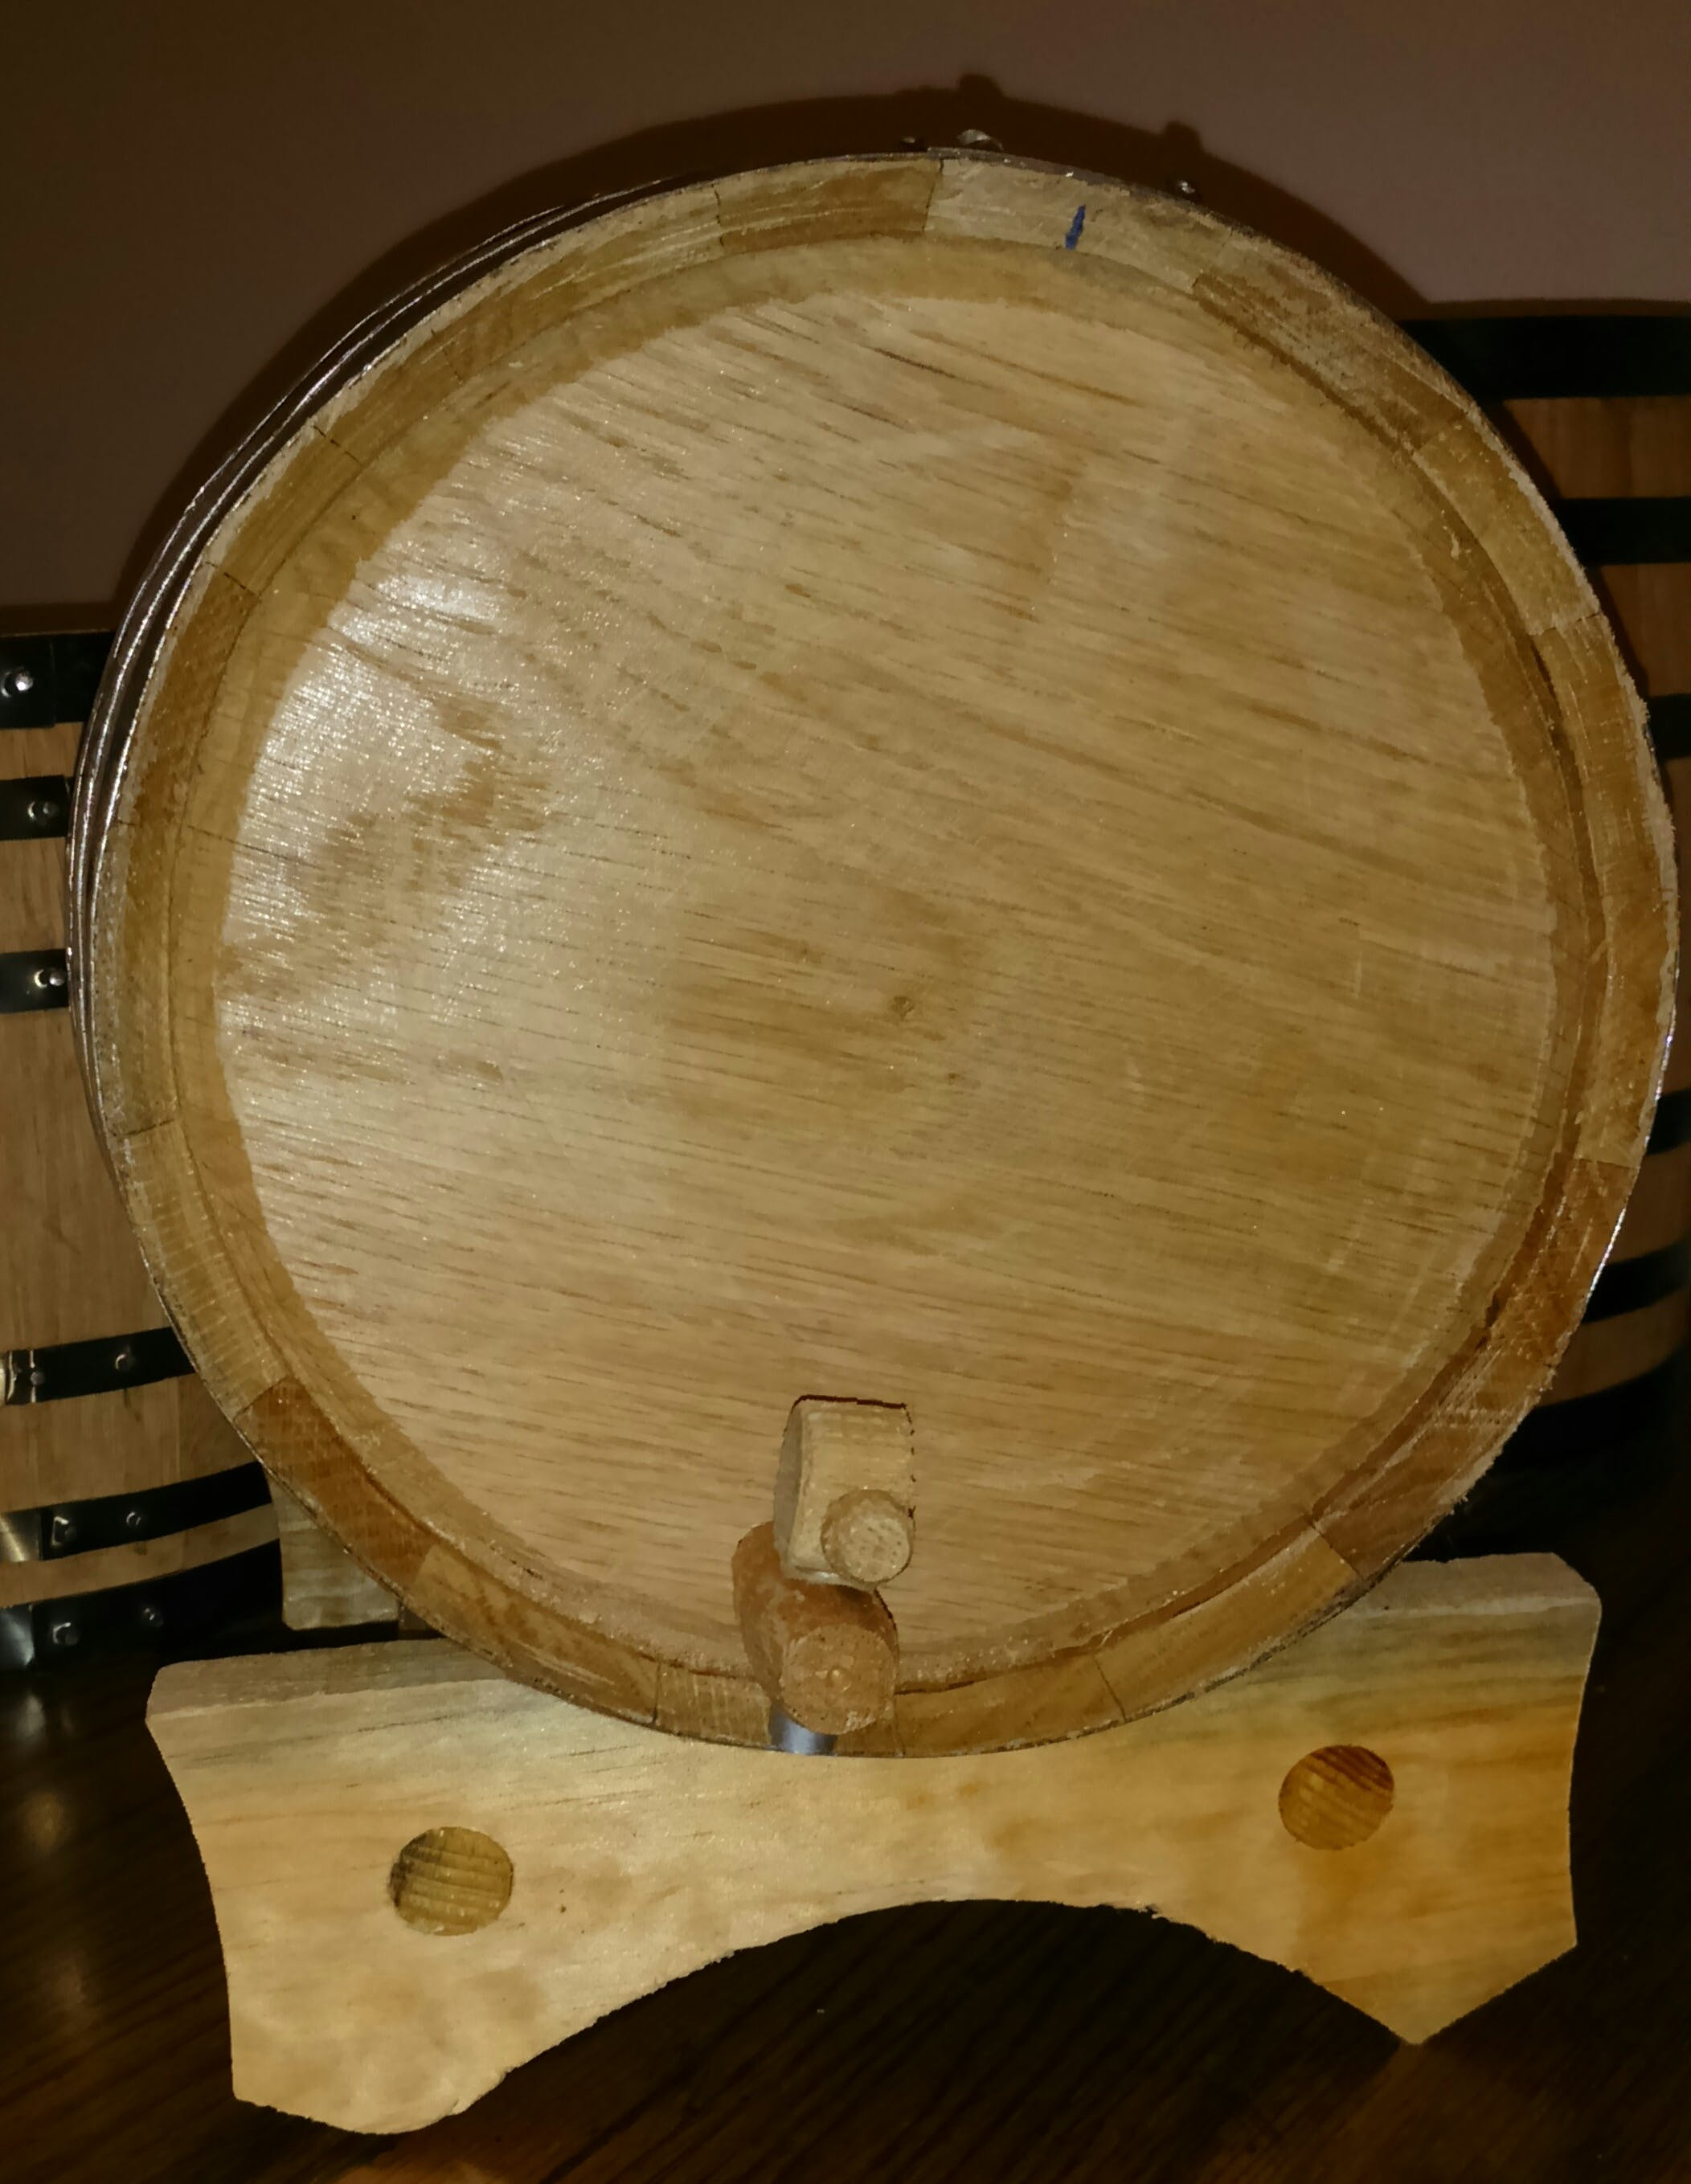 Small american white oak aging barrels - sold by The American Barrels